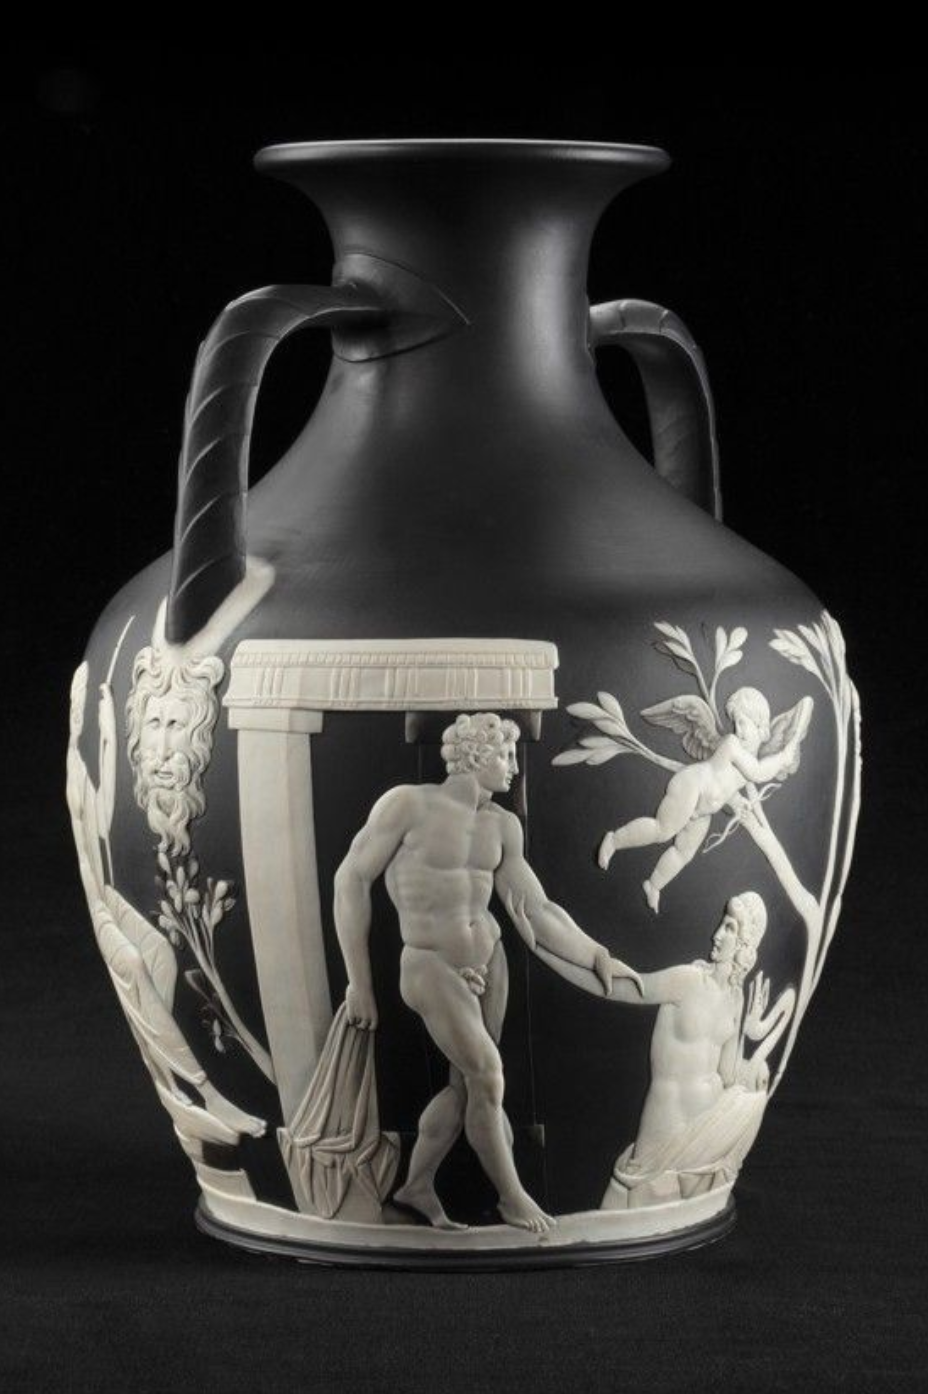 Josiah Wedgwood and Sons, c.1840-60, Staffordshire, England